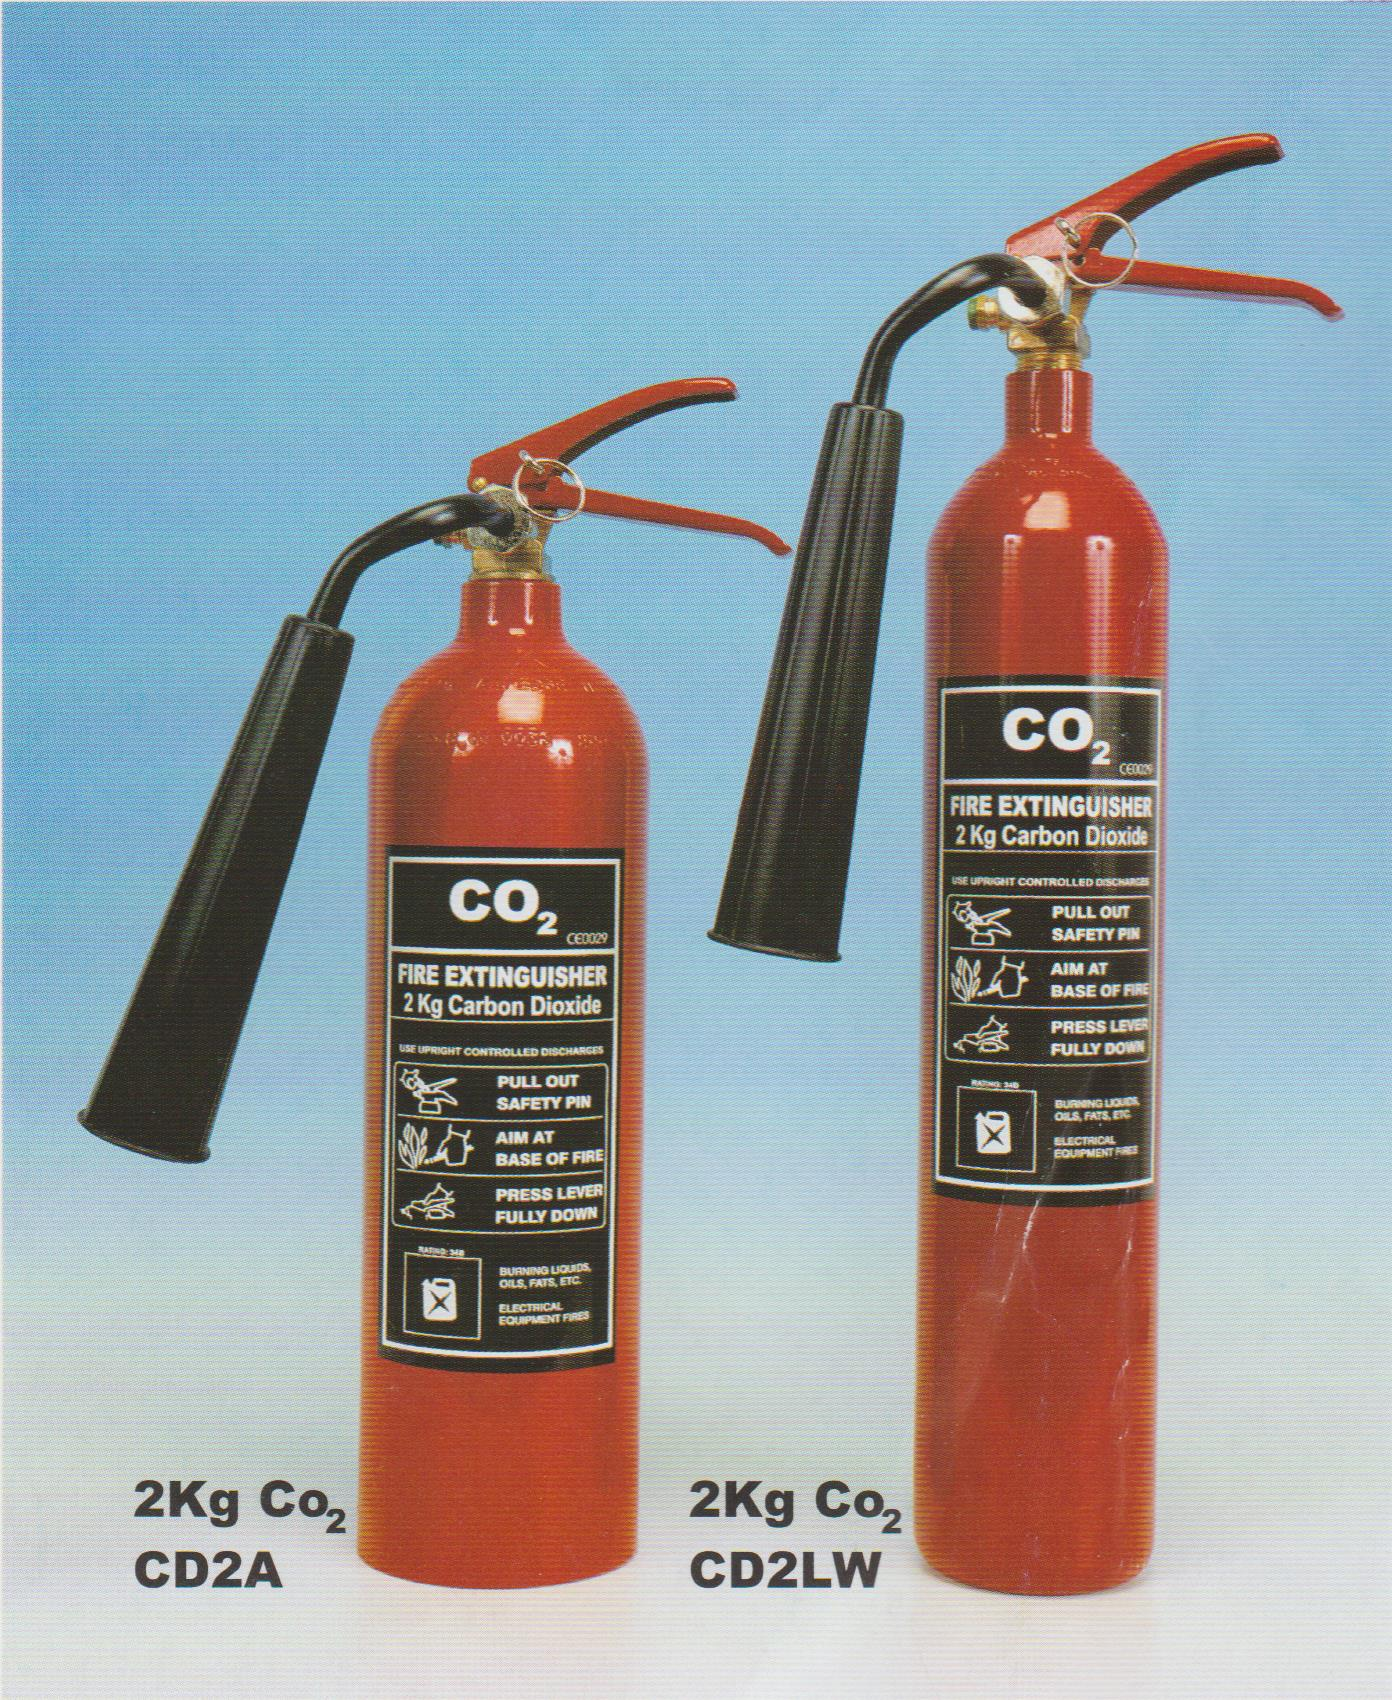 2 kg CO2 Extinguishers 001